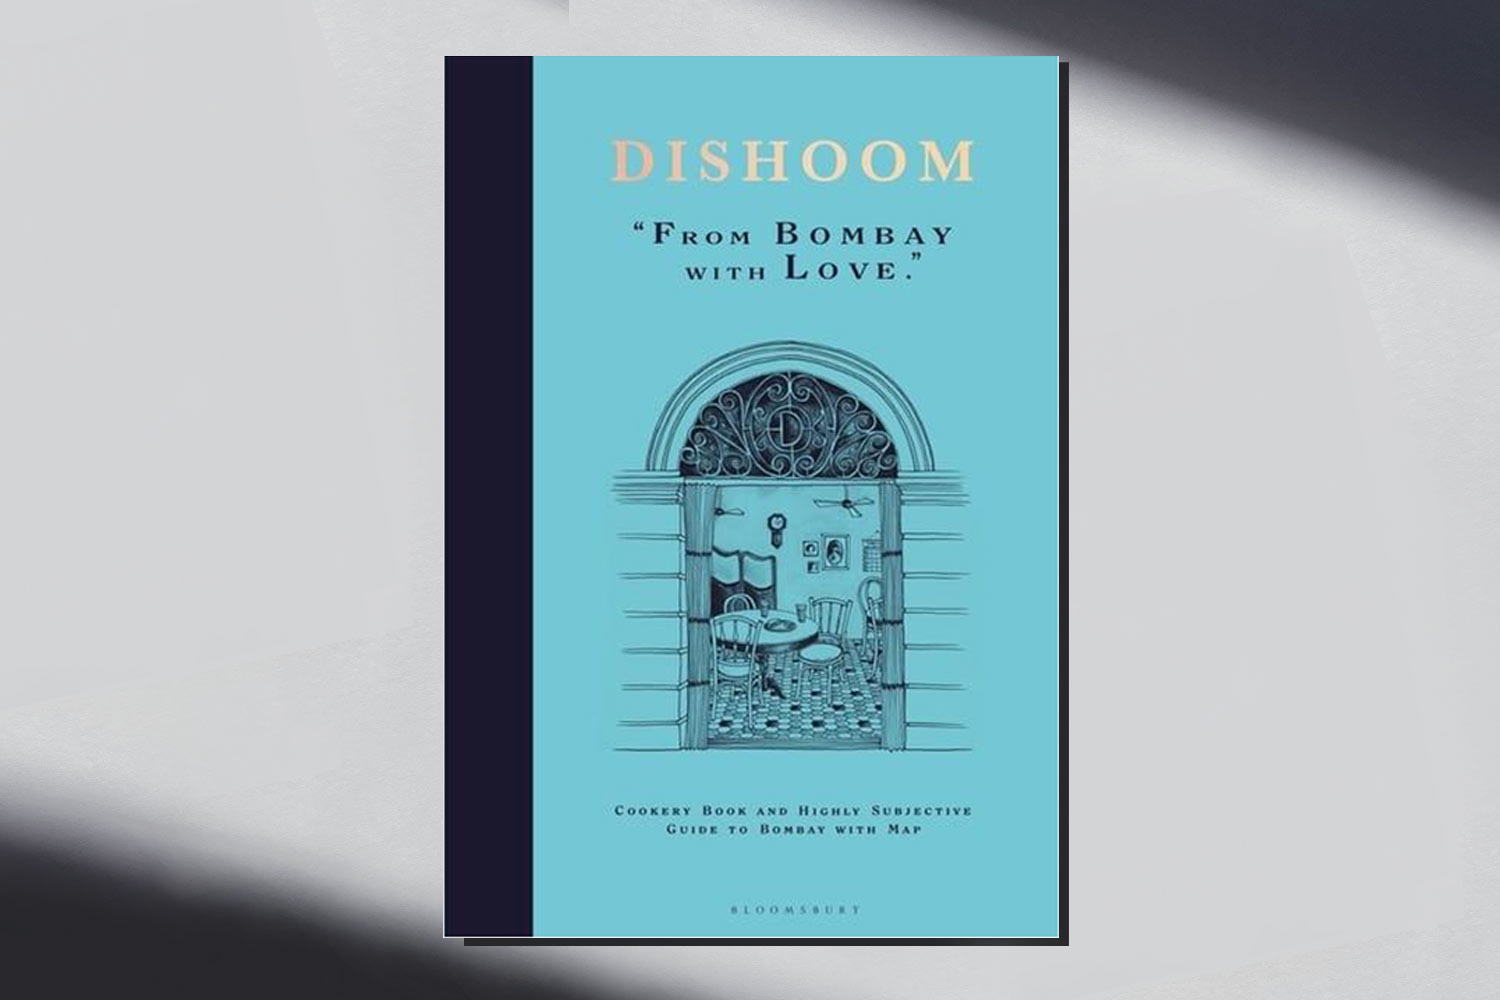 The Best Cookbooks: Dishoom: From Bombay with Love